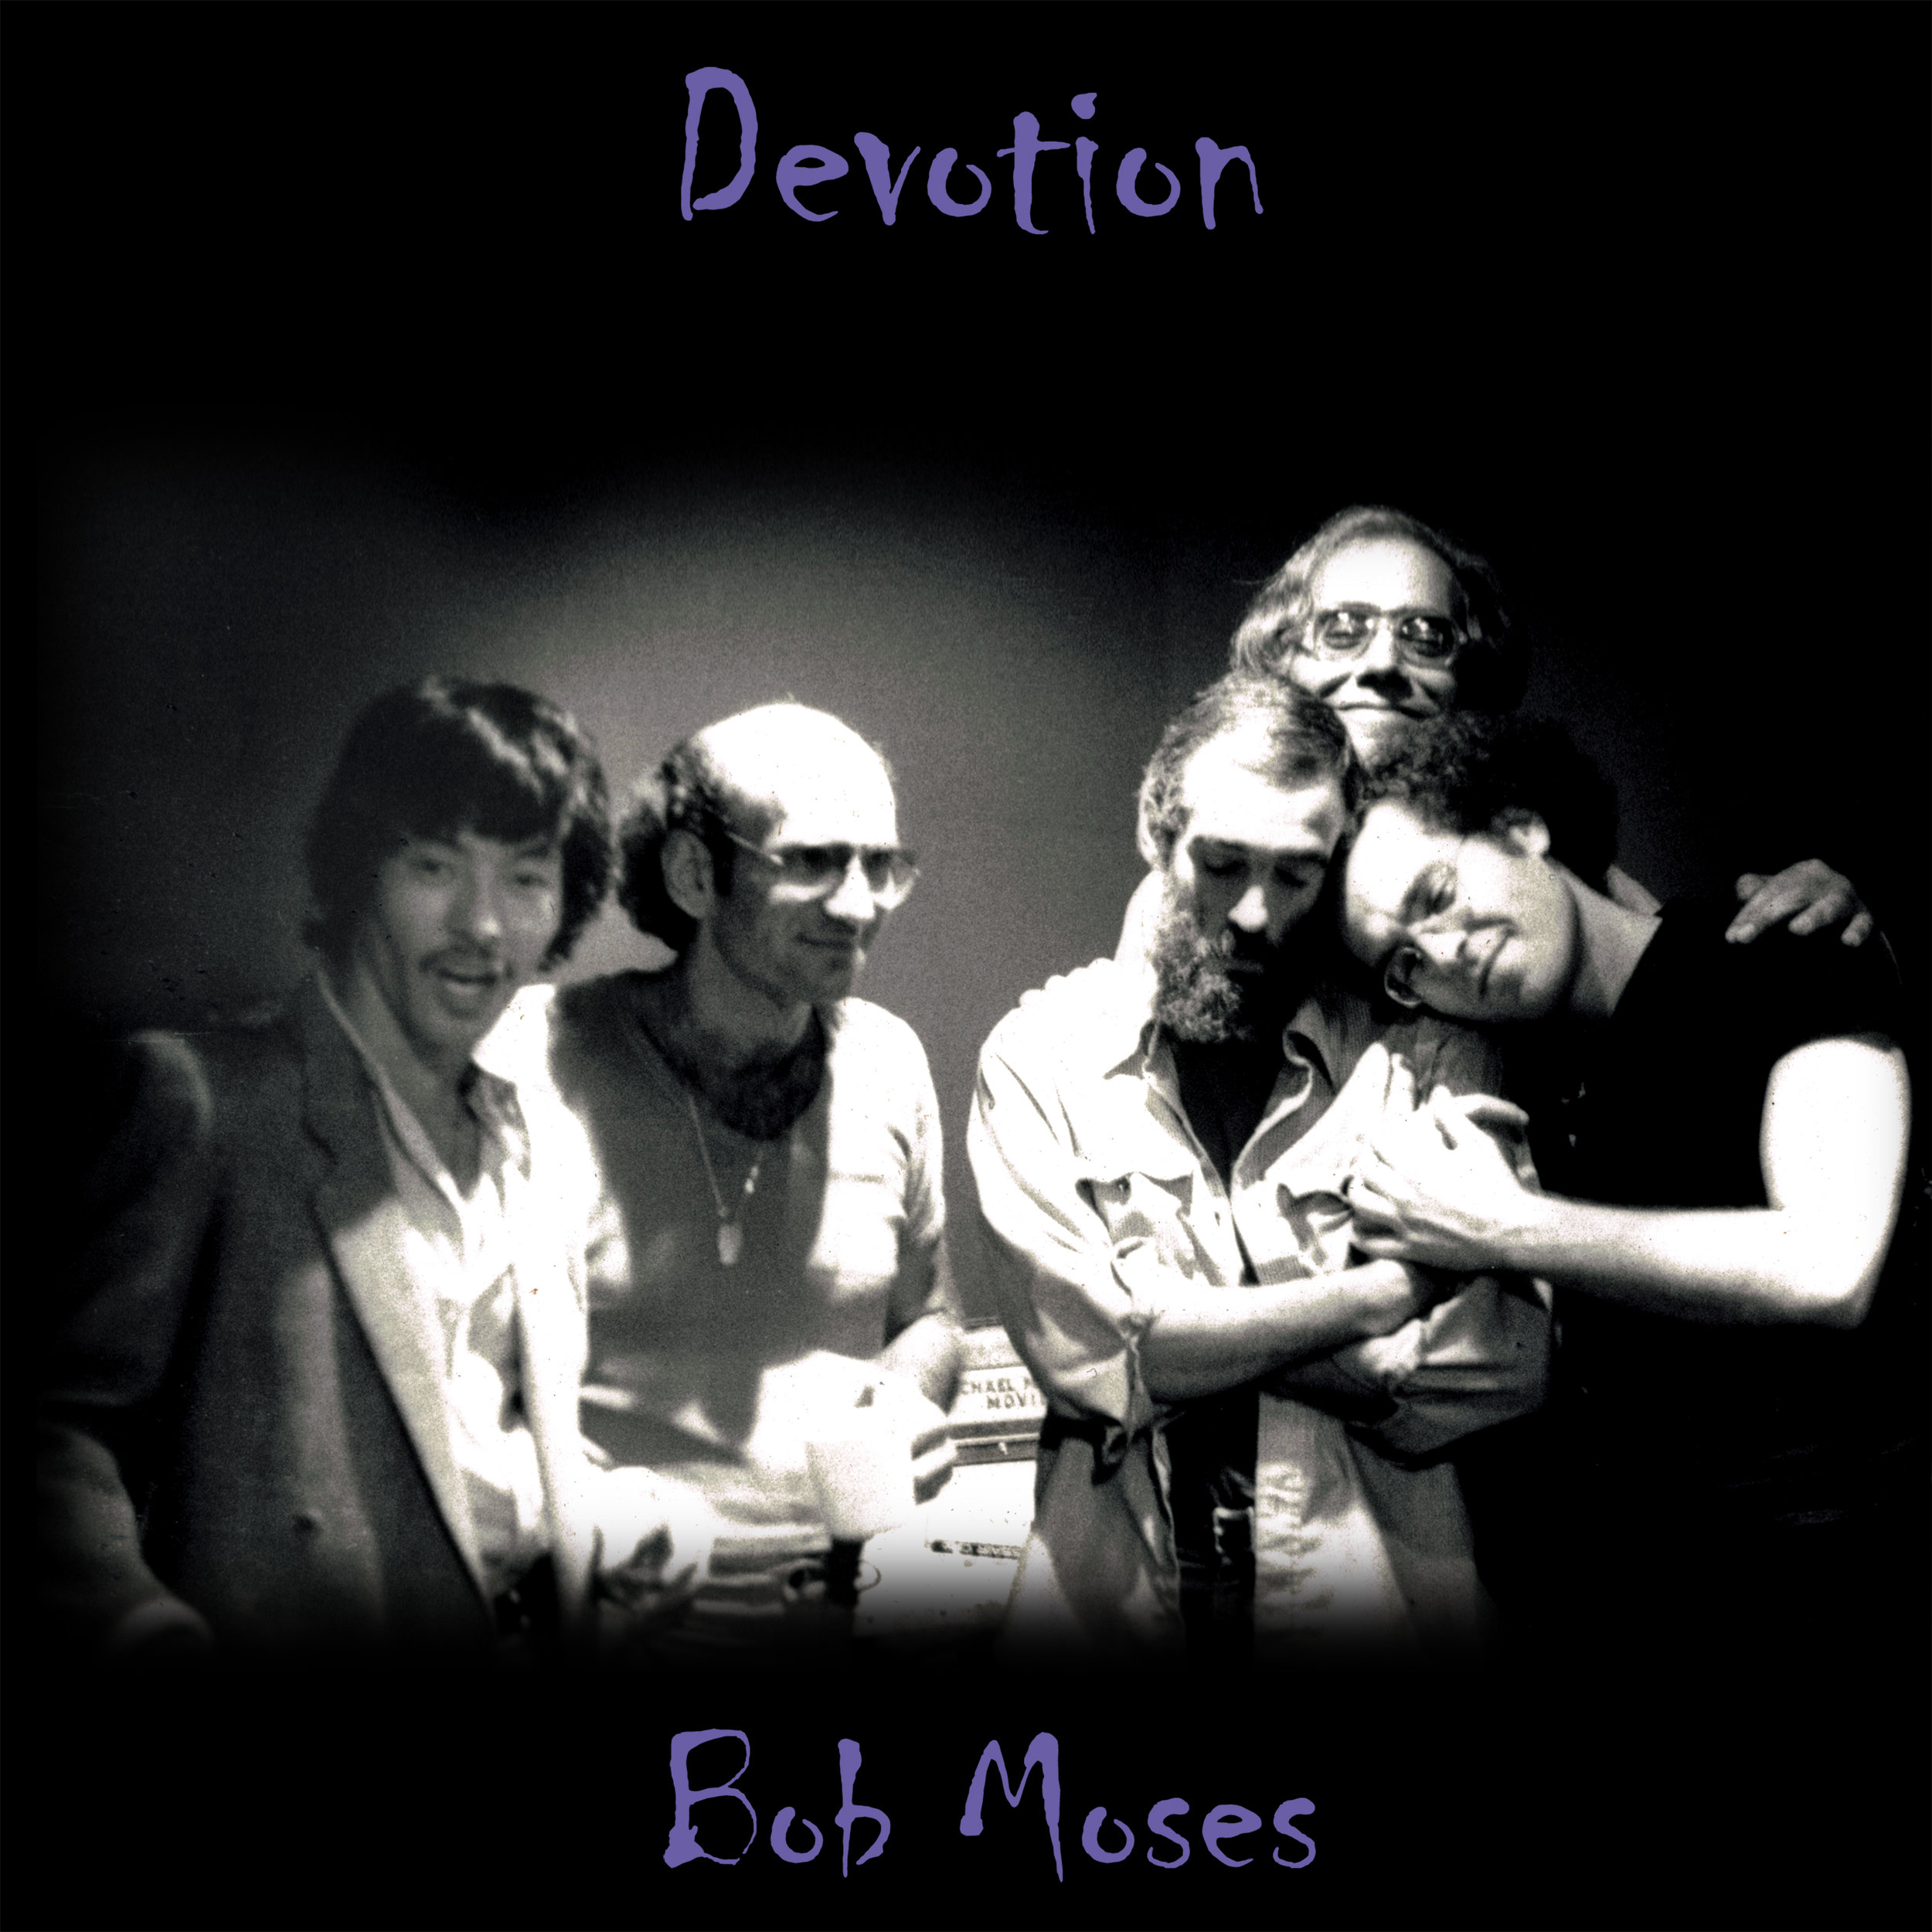 DEVOTION    Compact Disc -    E-mail your order     Release date - 1979    Re-issued - 2012    Label - Ra-Kalam Records    David Liebman - Tenor saxophone    Terumasa Hino - Cornet    Steve Kuhn - Piano    Steve Swallow - Electric bass    Bob Moses - Drums, percussion, voice